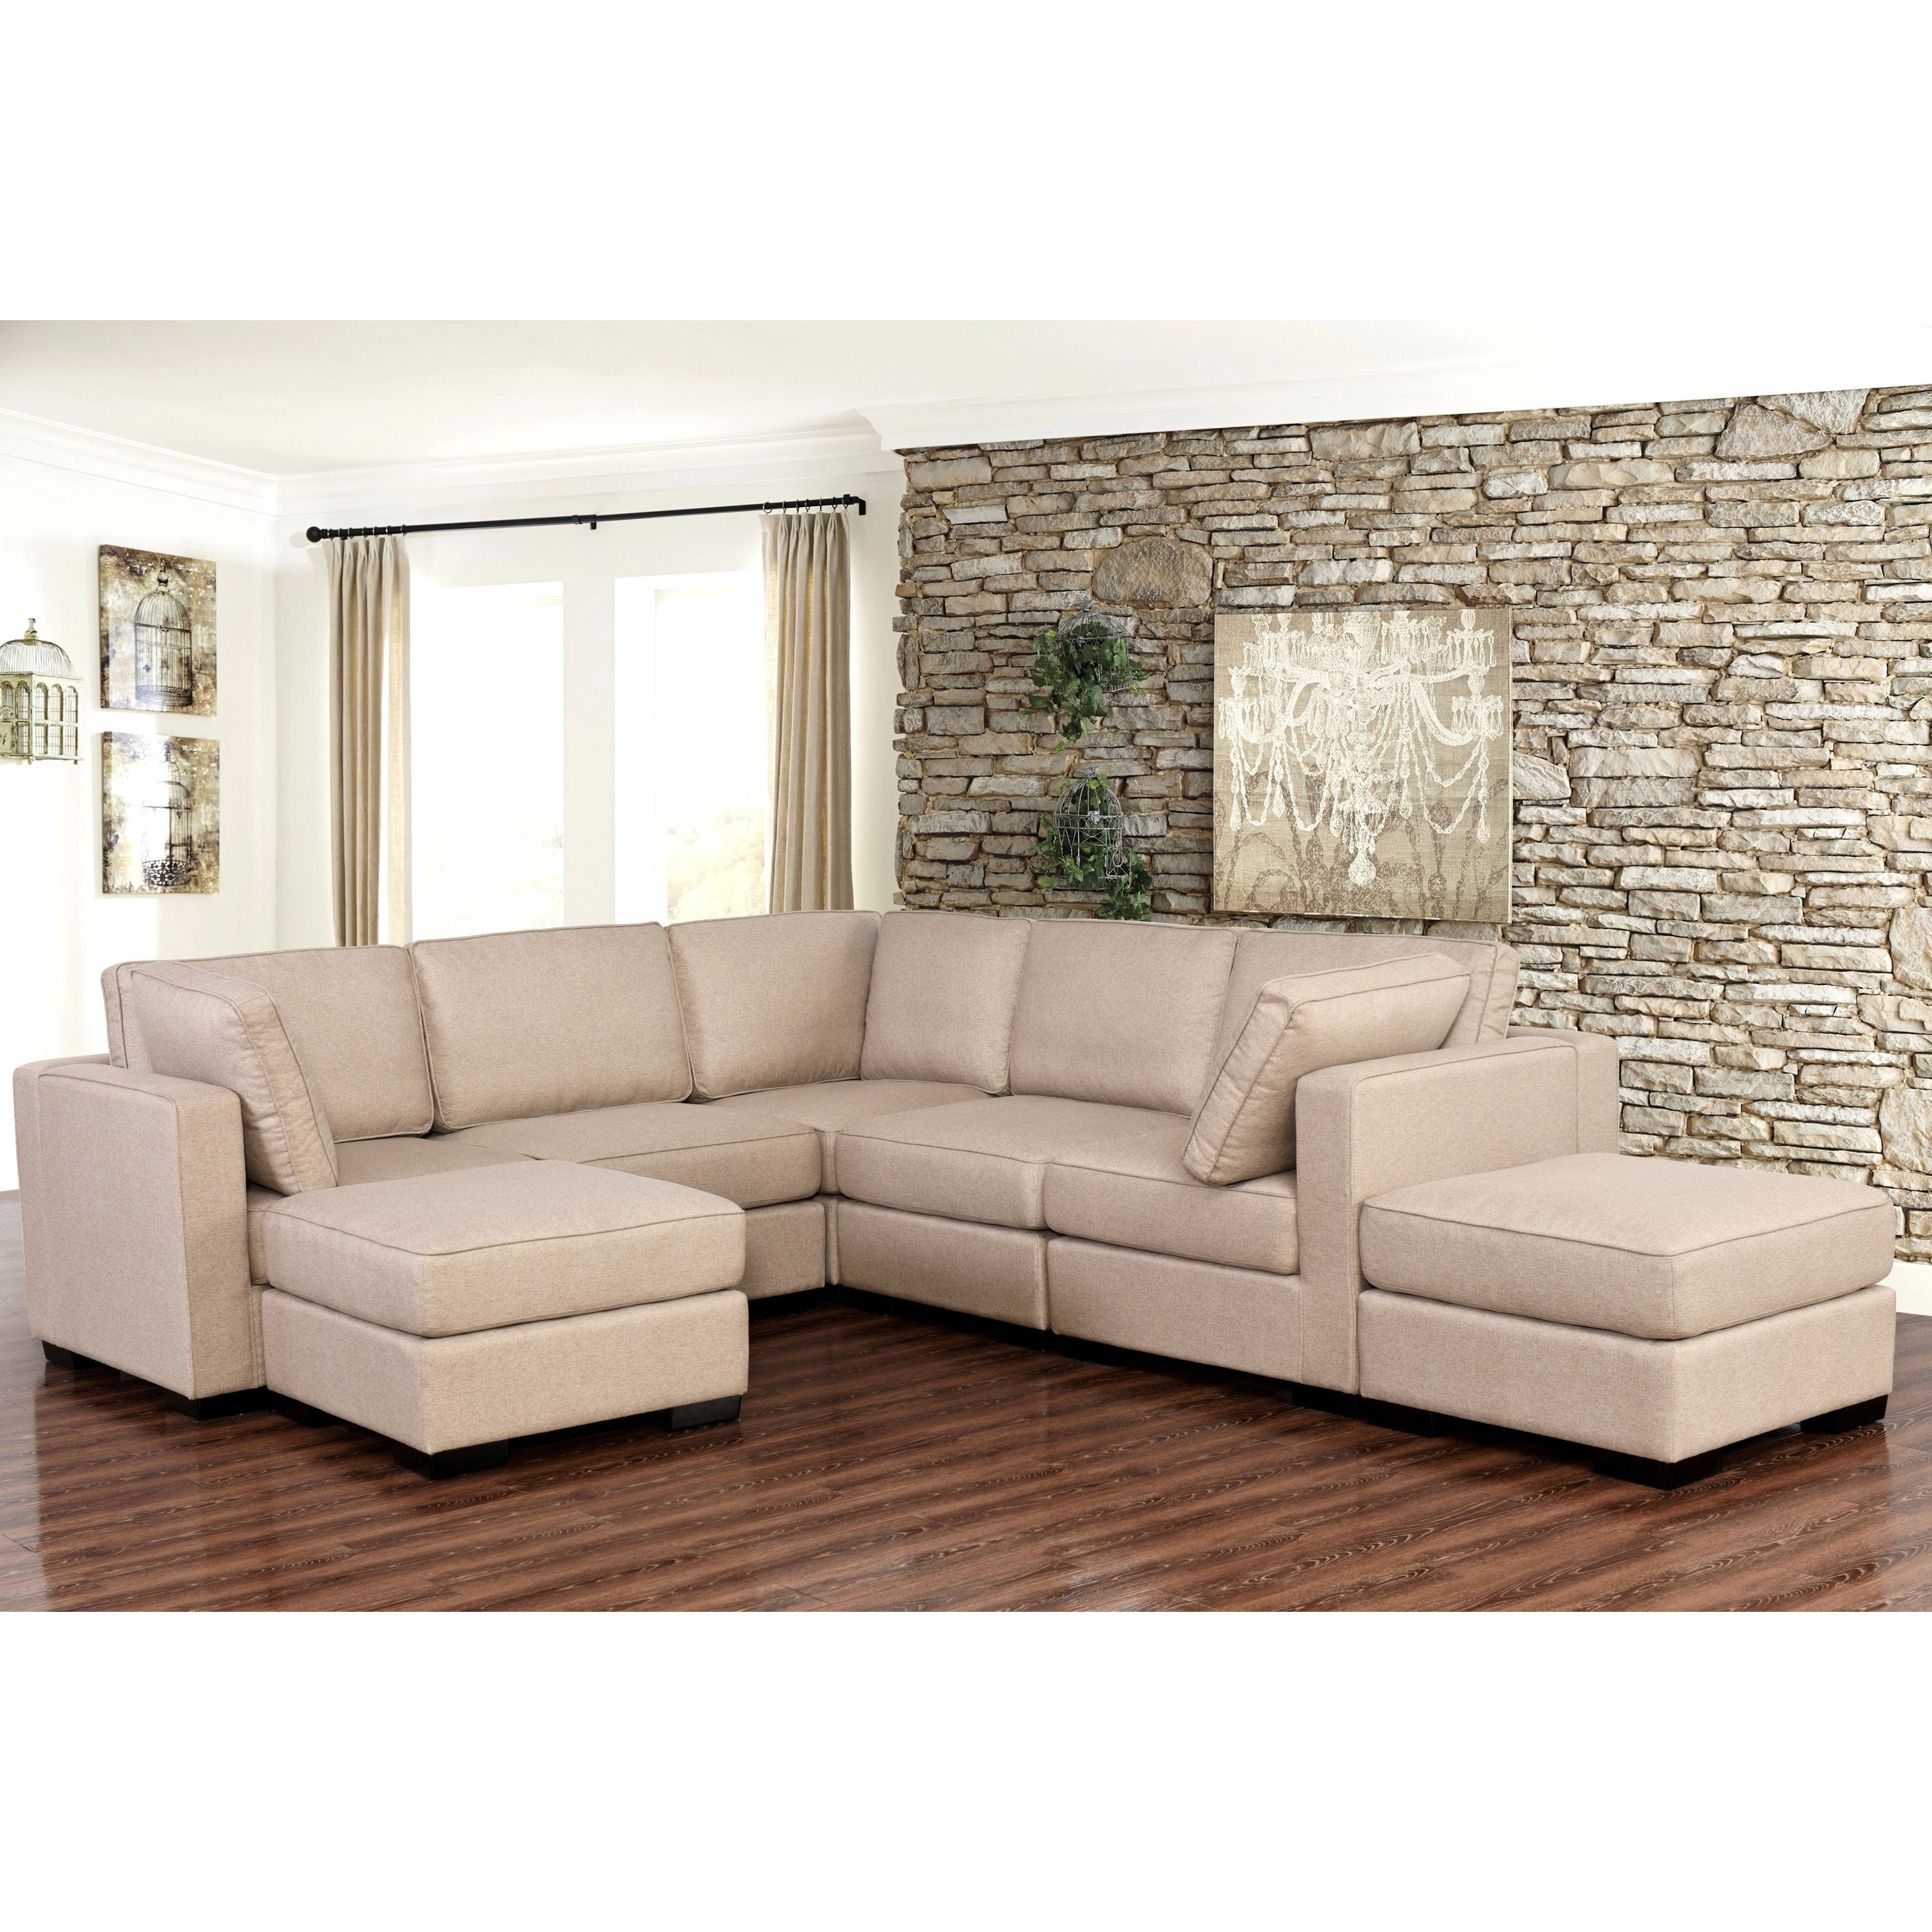 Well Known Harper Down 3 Piece Sectionals Intended For Shop Abbyson Harper Fabric Modular 7 Piece Sectional – Free Shipping (View 2 of 20)